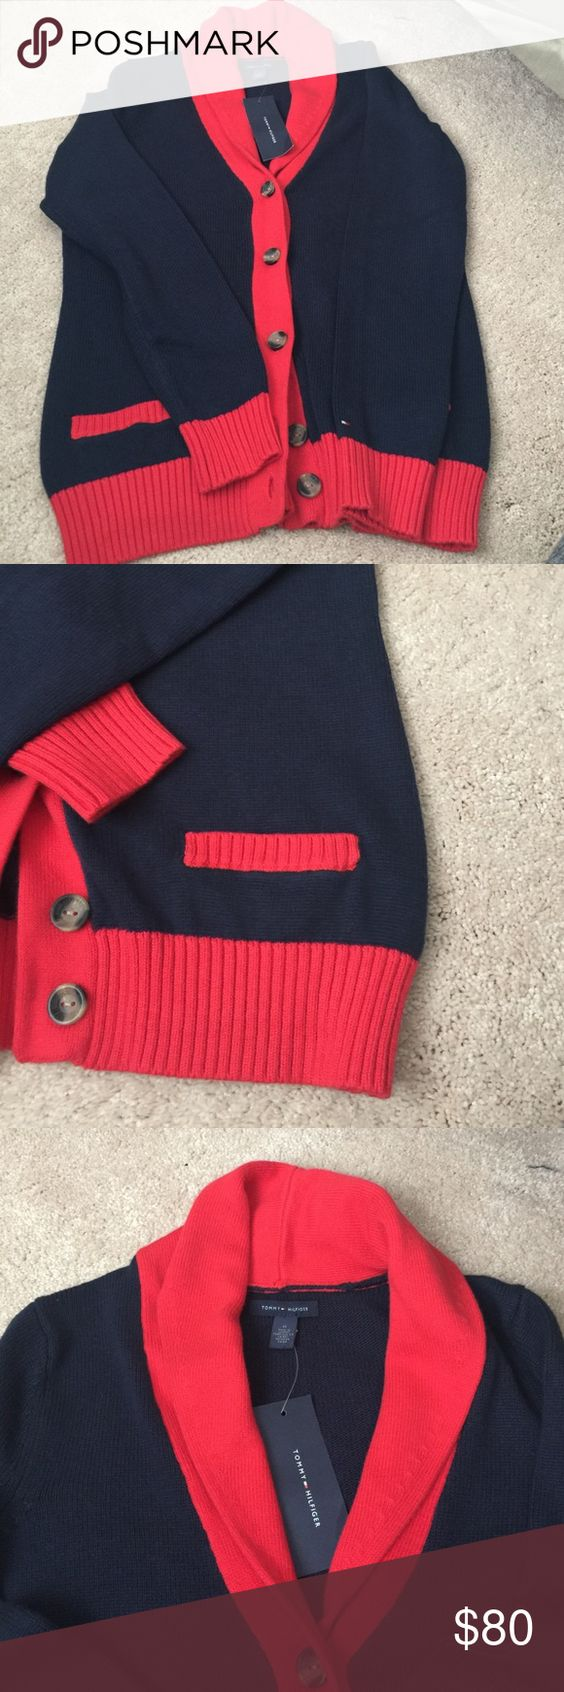 Shawl Cardigan Sweater Navy Blue and Red Cardigan Tommy Hilfiger Sweaters Cardigans